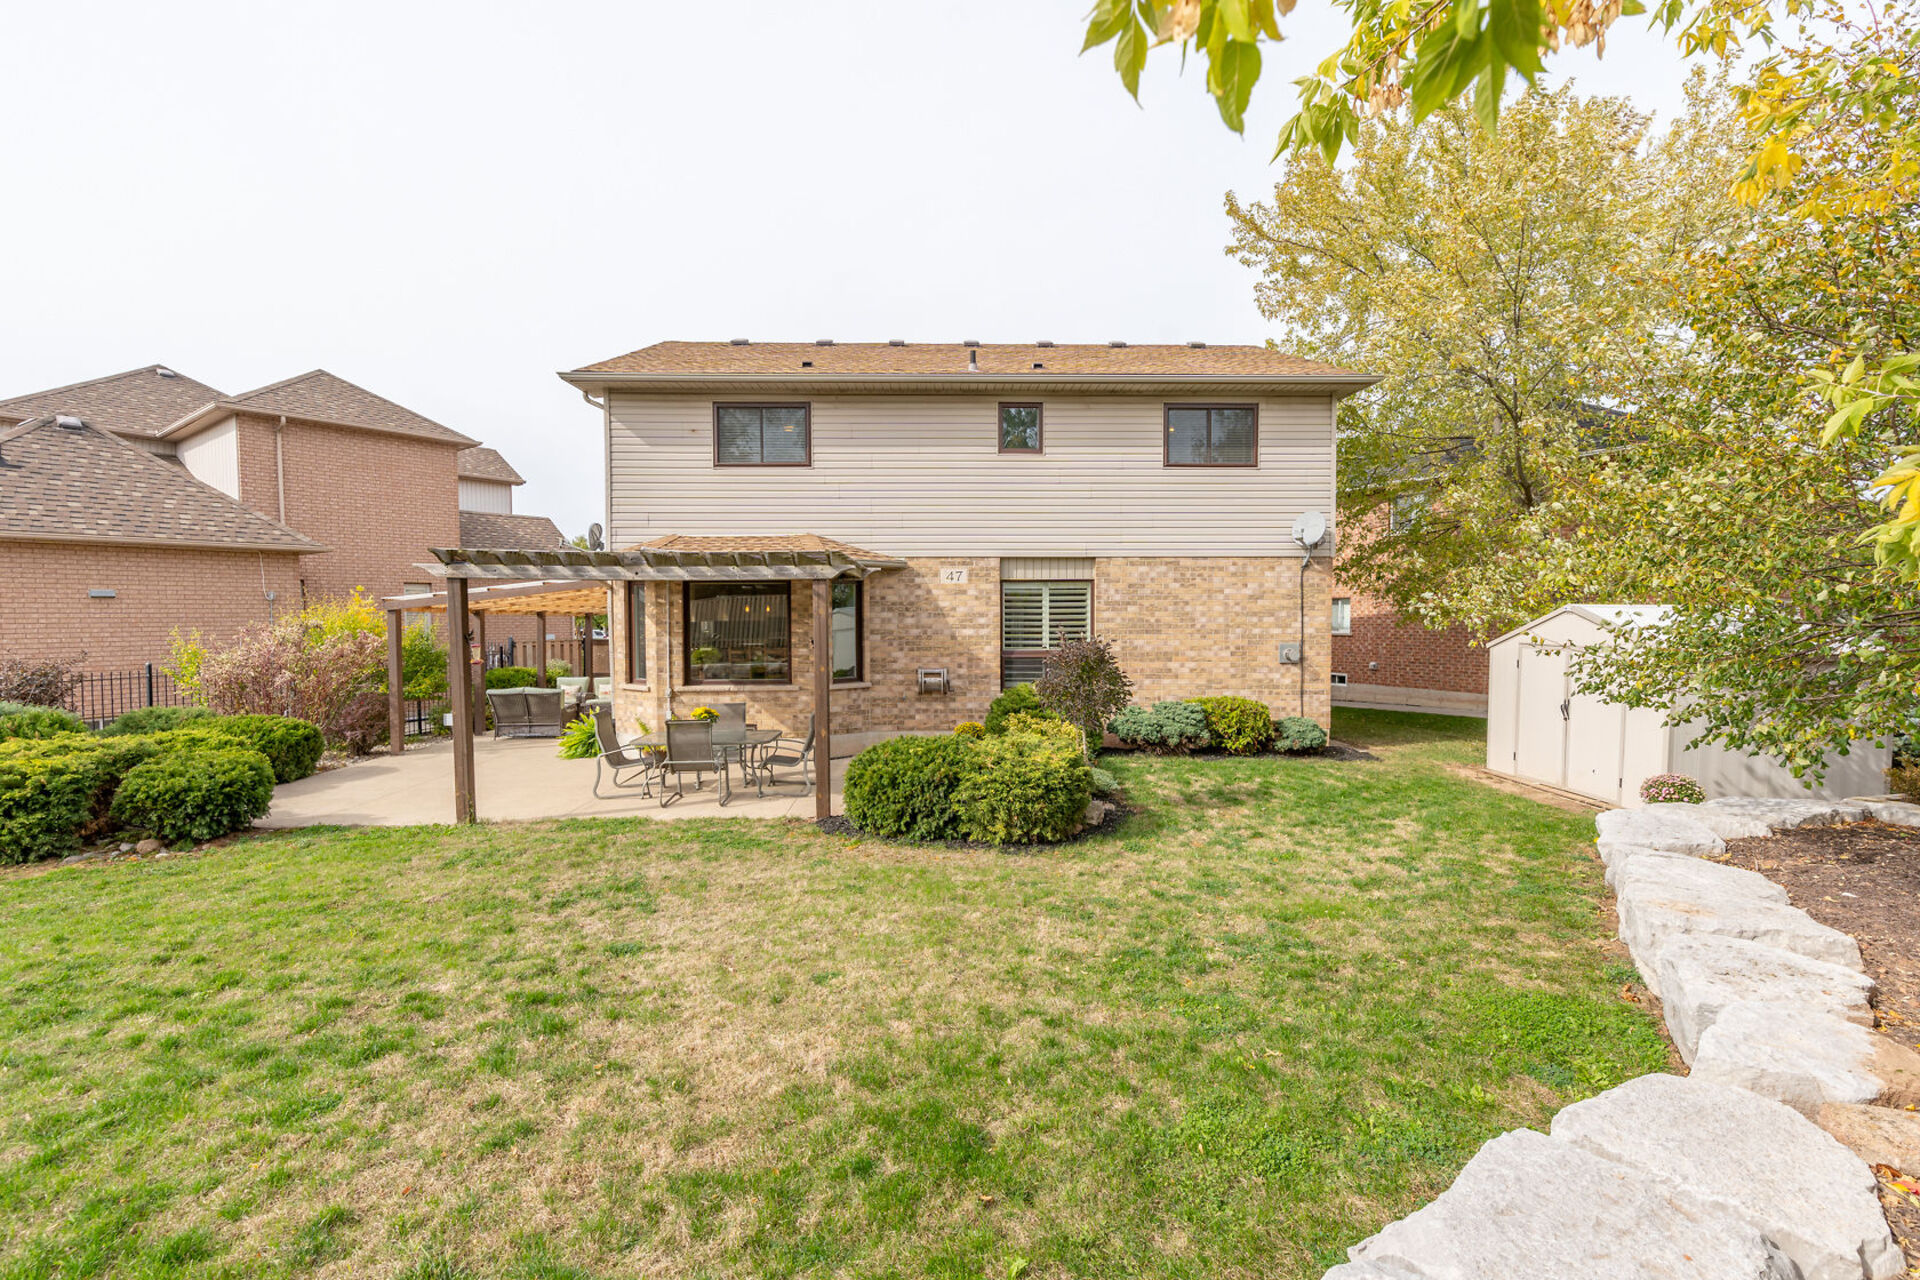 virtual-tour-302461-89 at 47 Chianti Cres, Stoney Creek, Hamilton